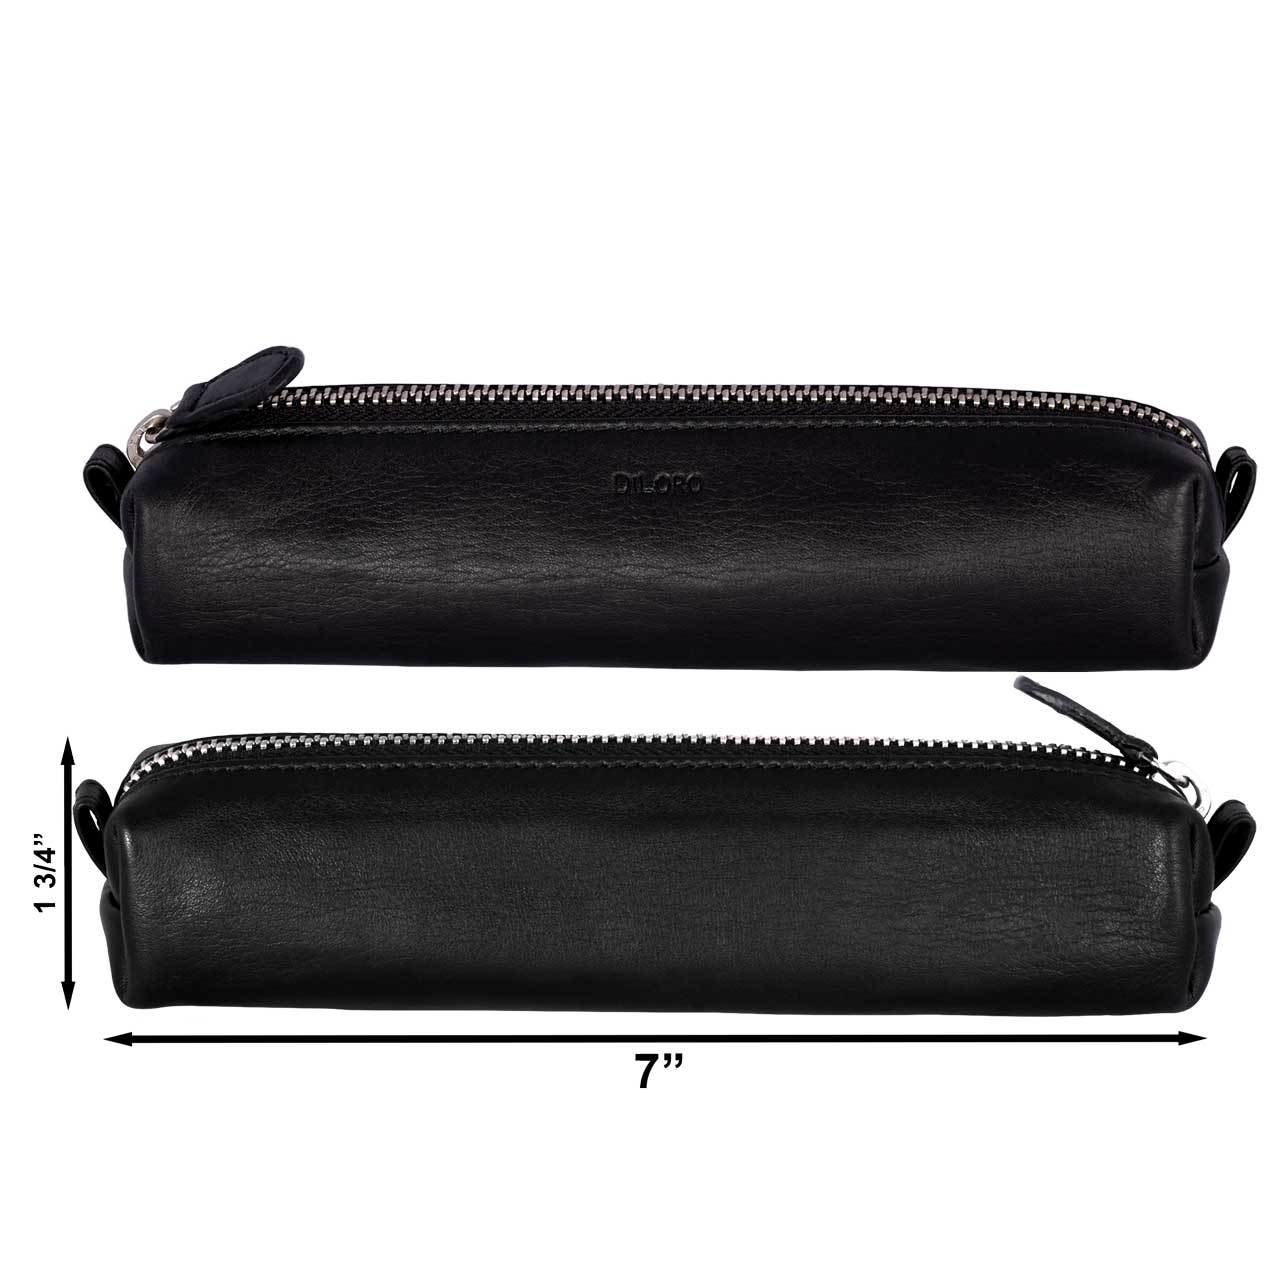 Multi-Purpose Zippered Leather Pen Pencil Case in Various Colors - Black (front and back side)